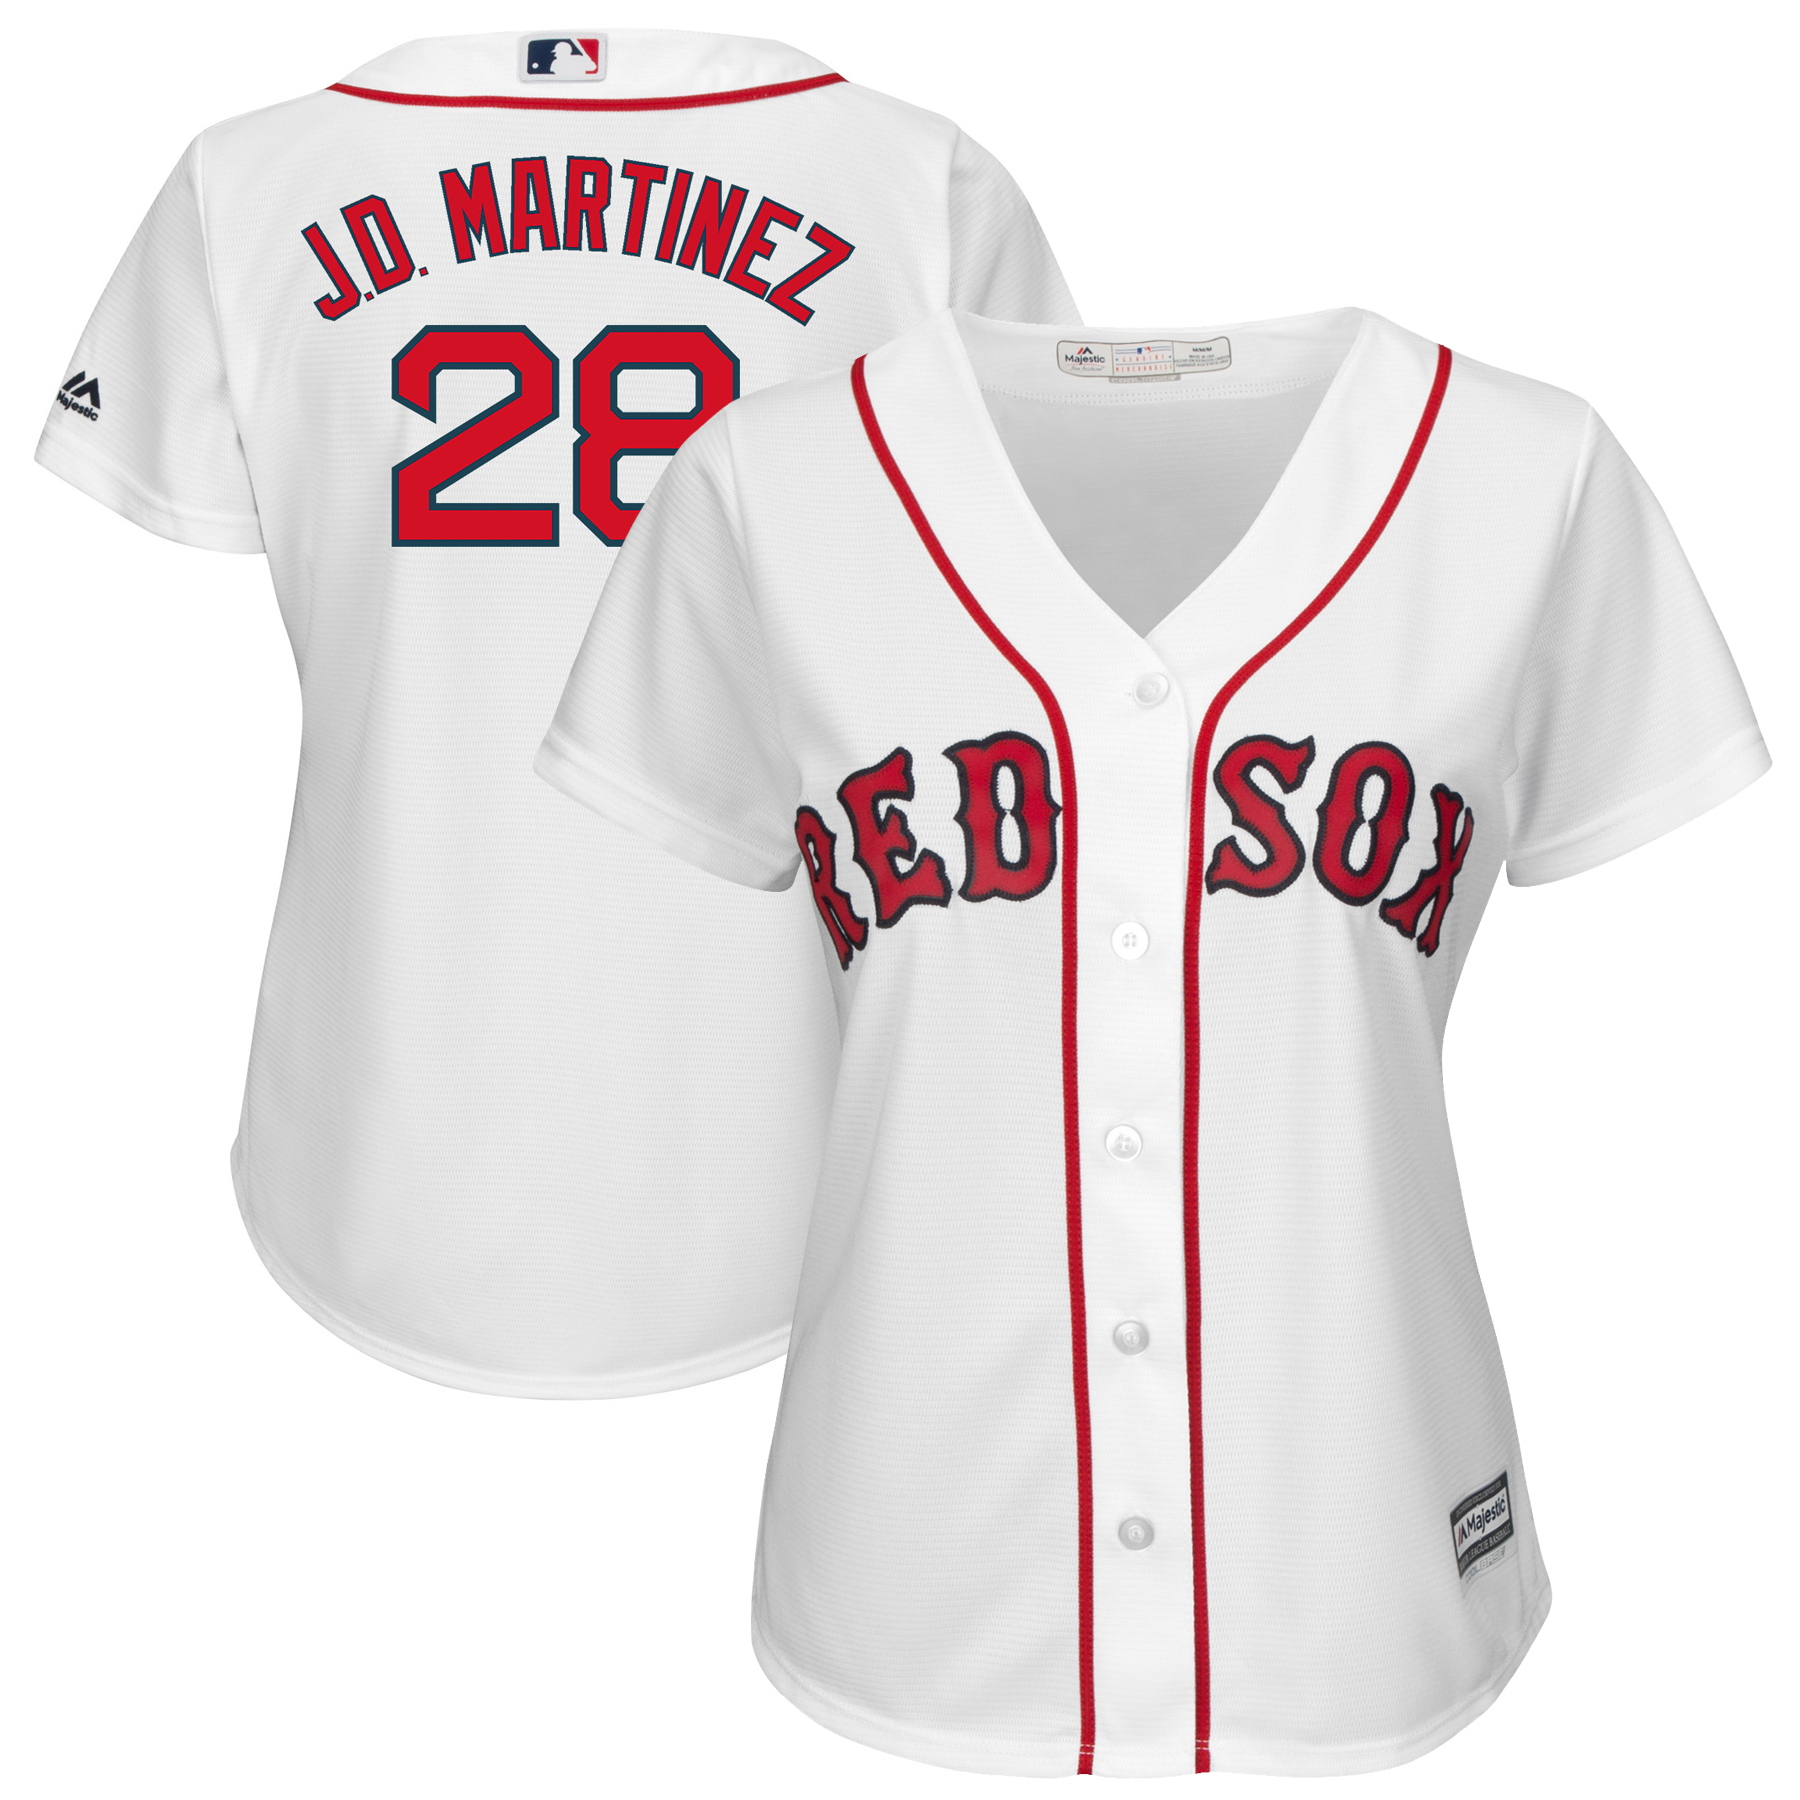 Boston Red Sox Majestic Women's Cool Base Player Jersey White by MAJESTIC LSG